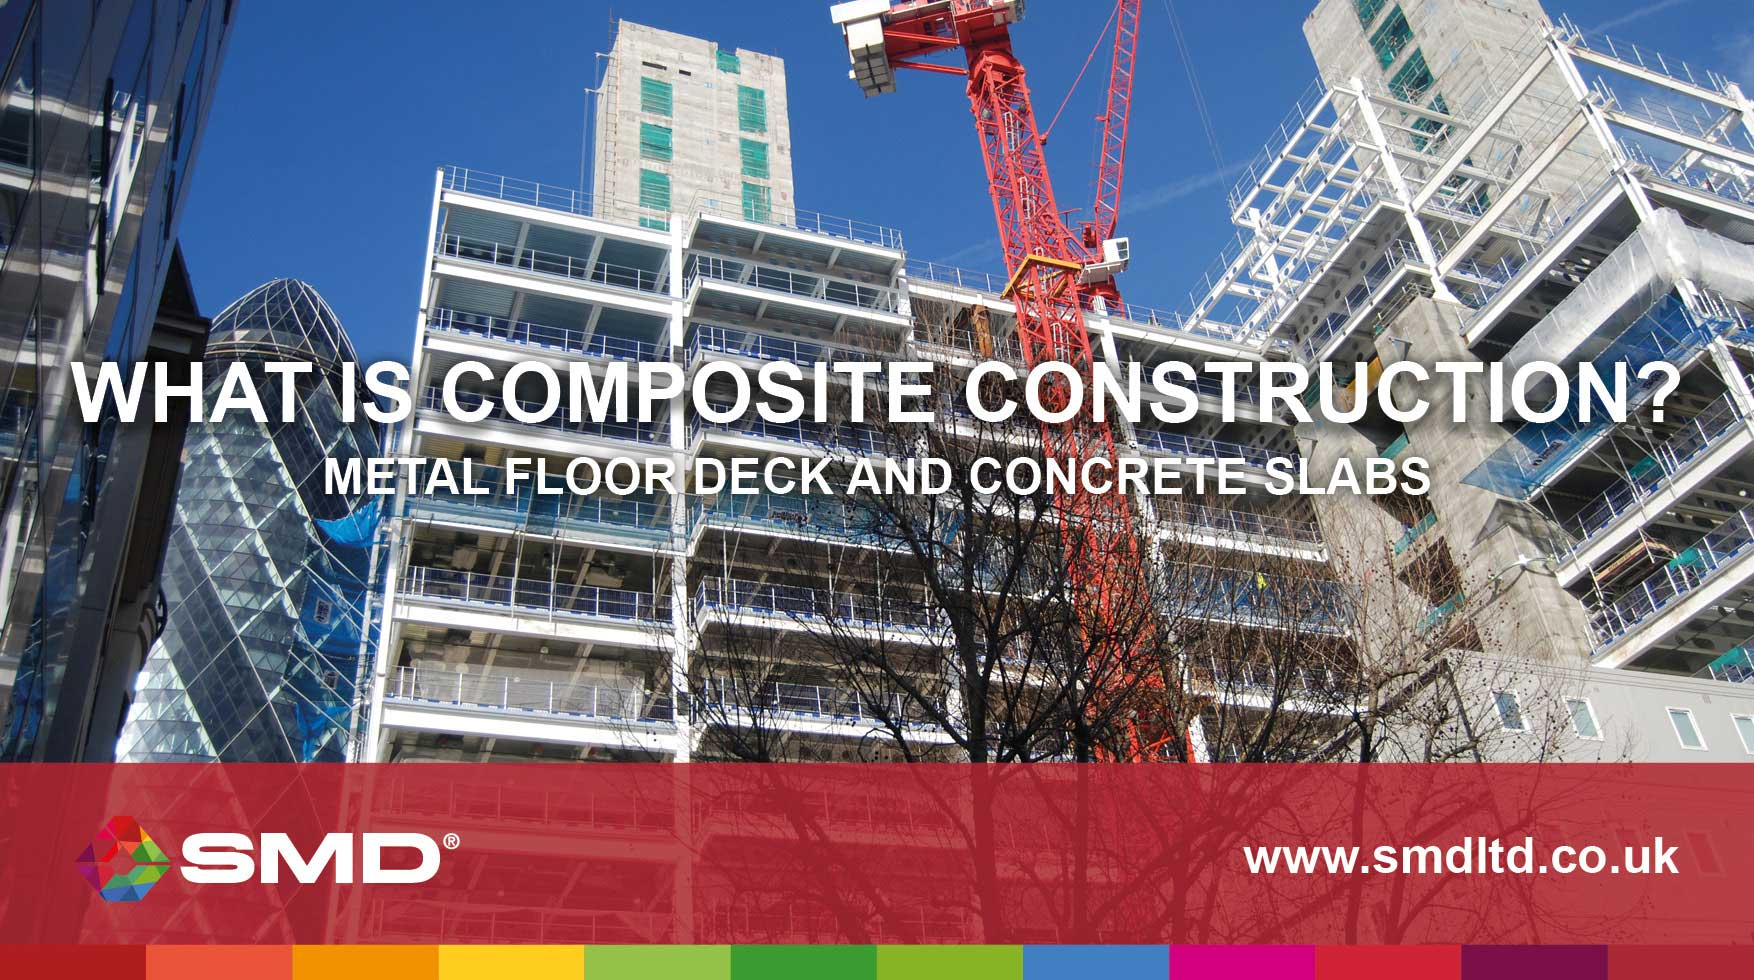 What is composite construction